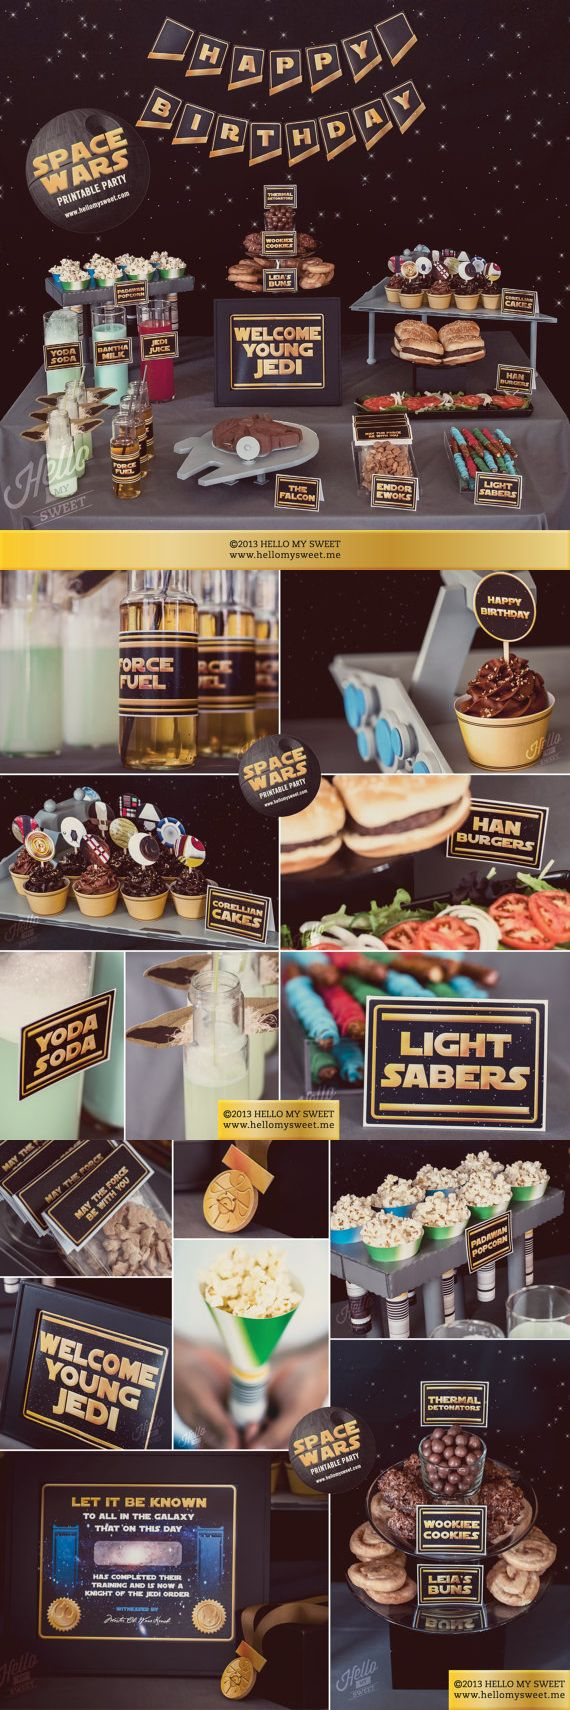 This Star Wars party set has everything you need for a great party, just print and go! Includes signs, food labels, water bottle wraps, treat label wraps and more. #commissionlink #starwars #starwarsparty  #birthdayparty